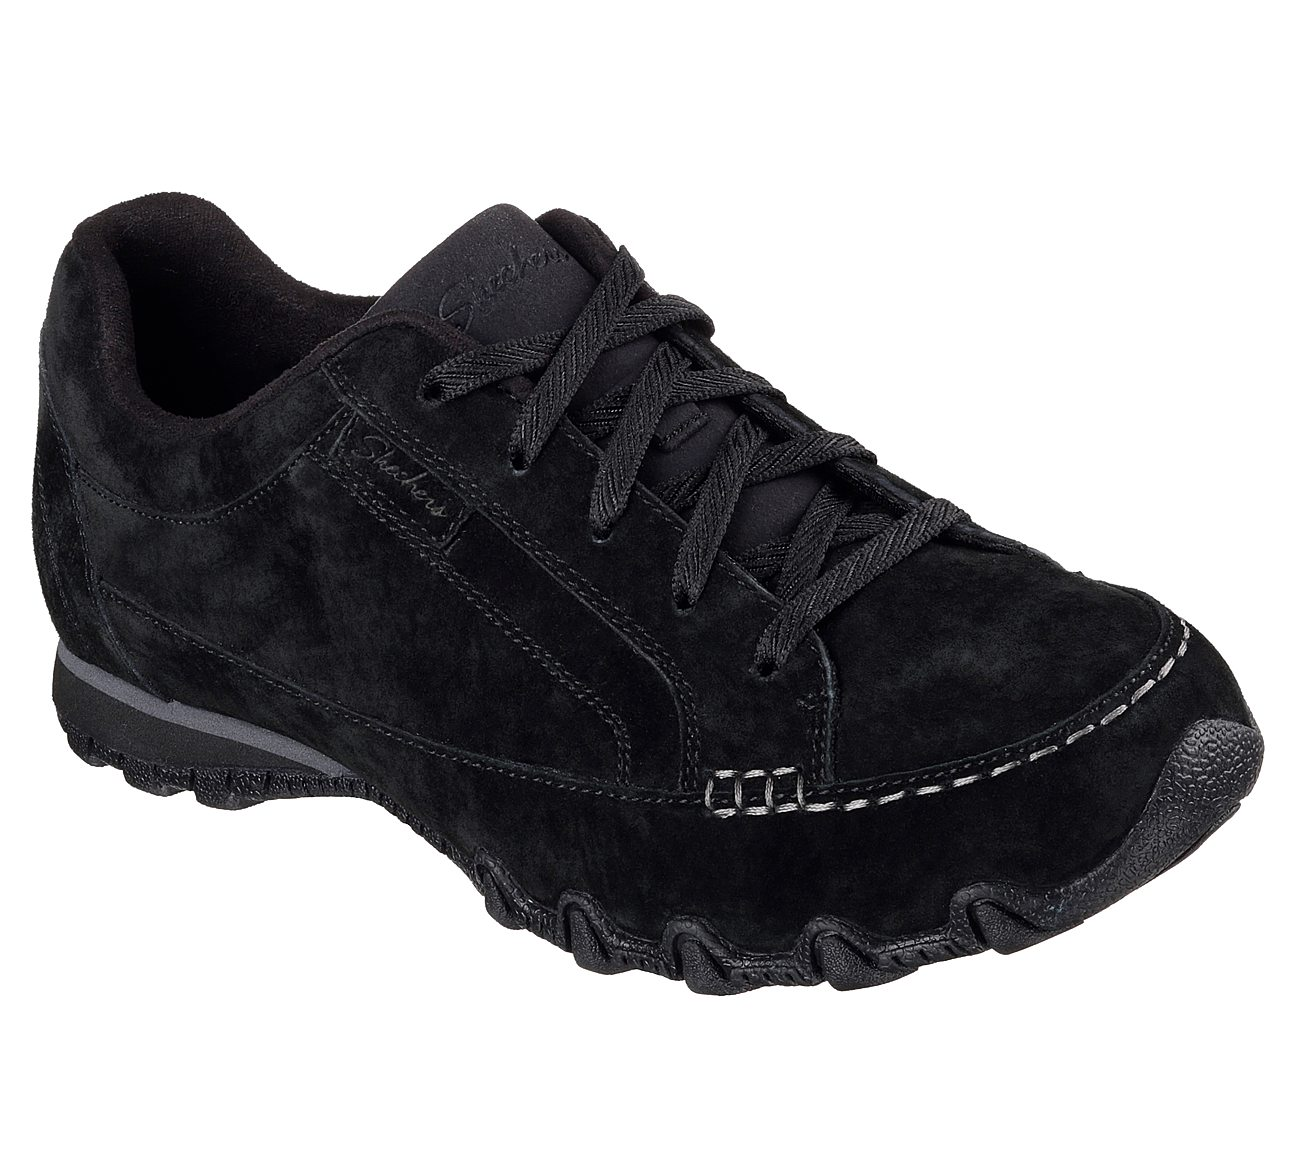 New Skechers 49336 BLK Relaxed Fit Bikers Black Women's Casual Shoes 8 US